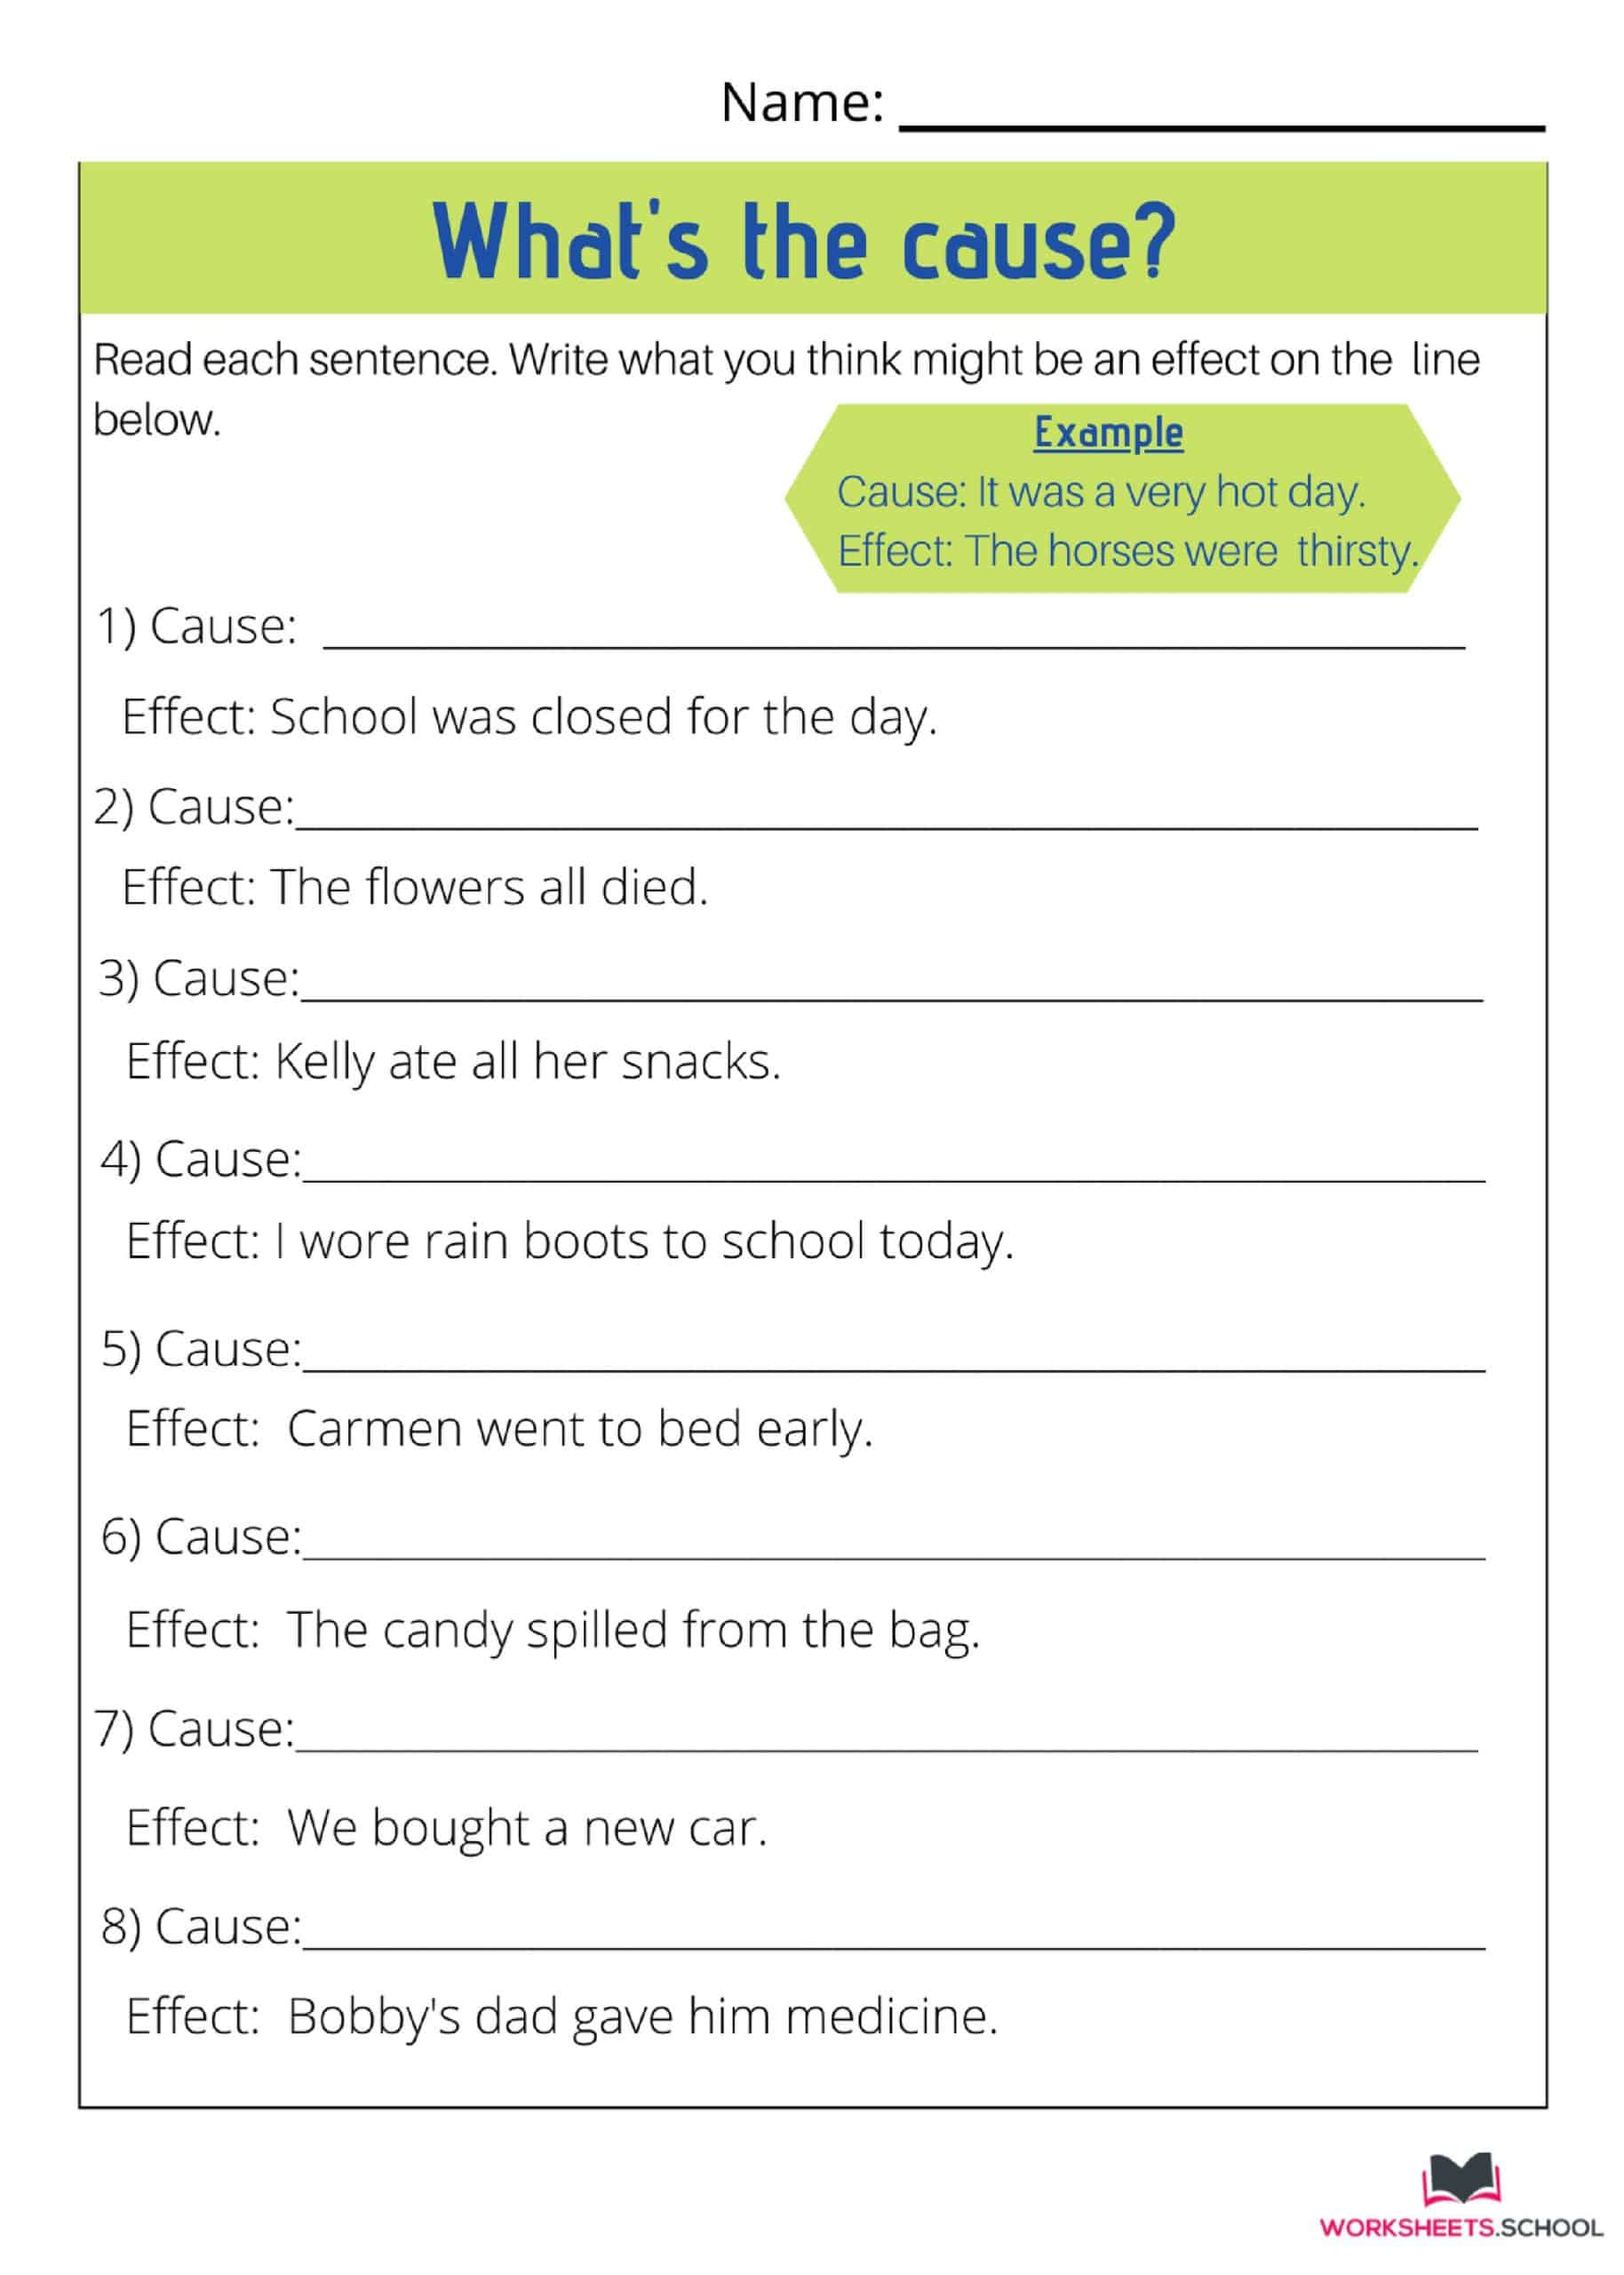 Cause and Effect Worksheet - Whats the Cause 2